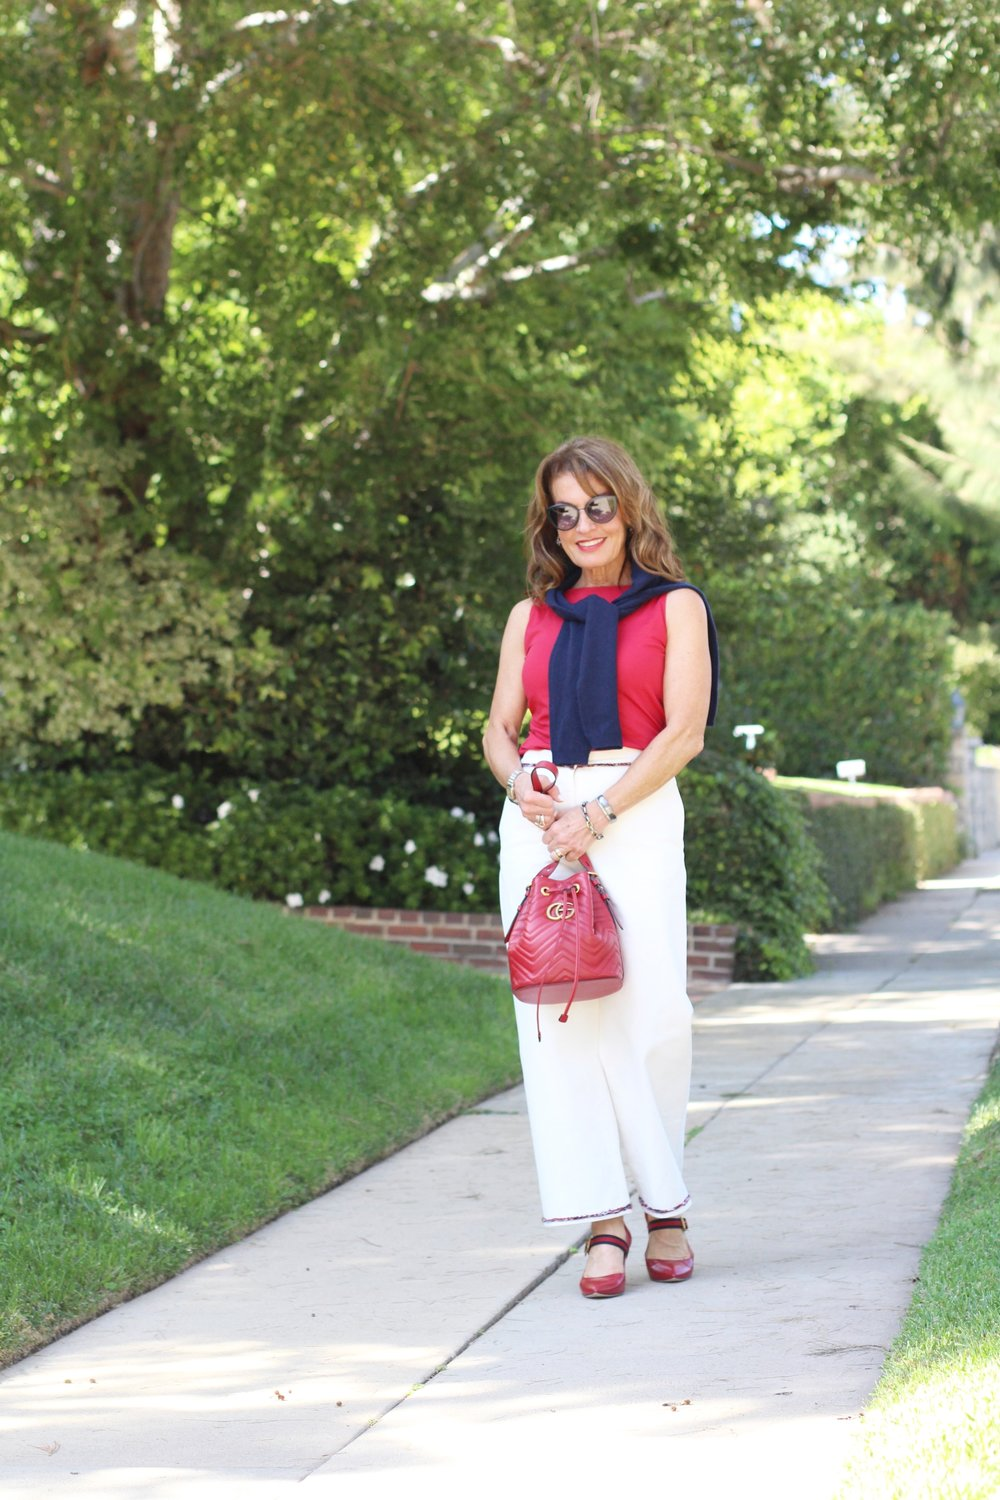 Chanel pants,    Worth New York top   ,    C by Bloomingdales cardigan   , Gucci shoes and handbag,    Suneera bracelets   , Chanel shades.